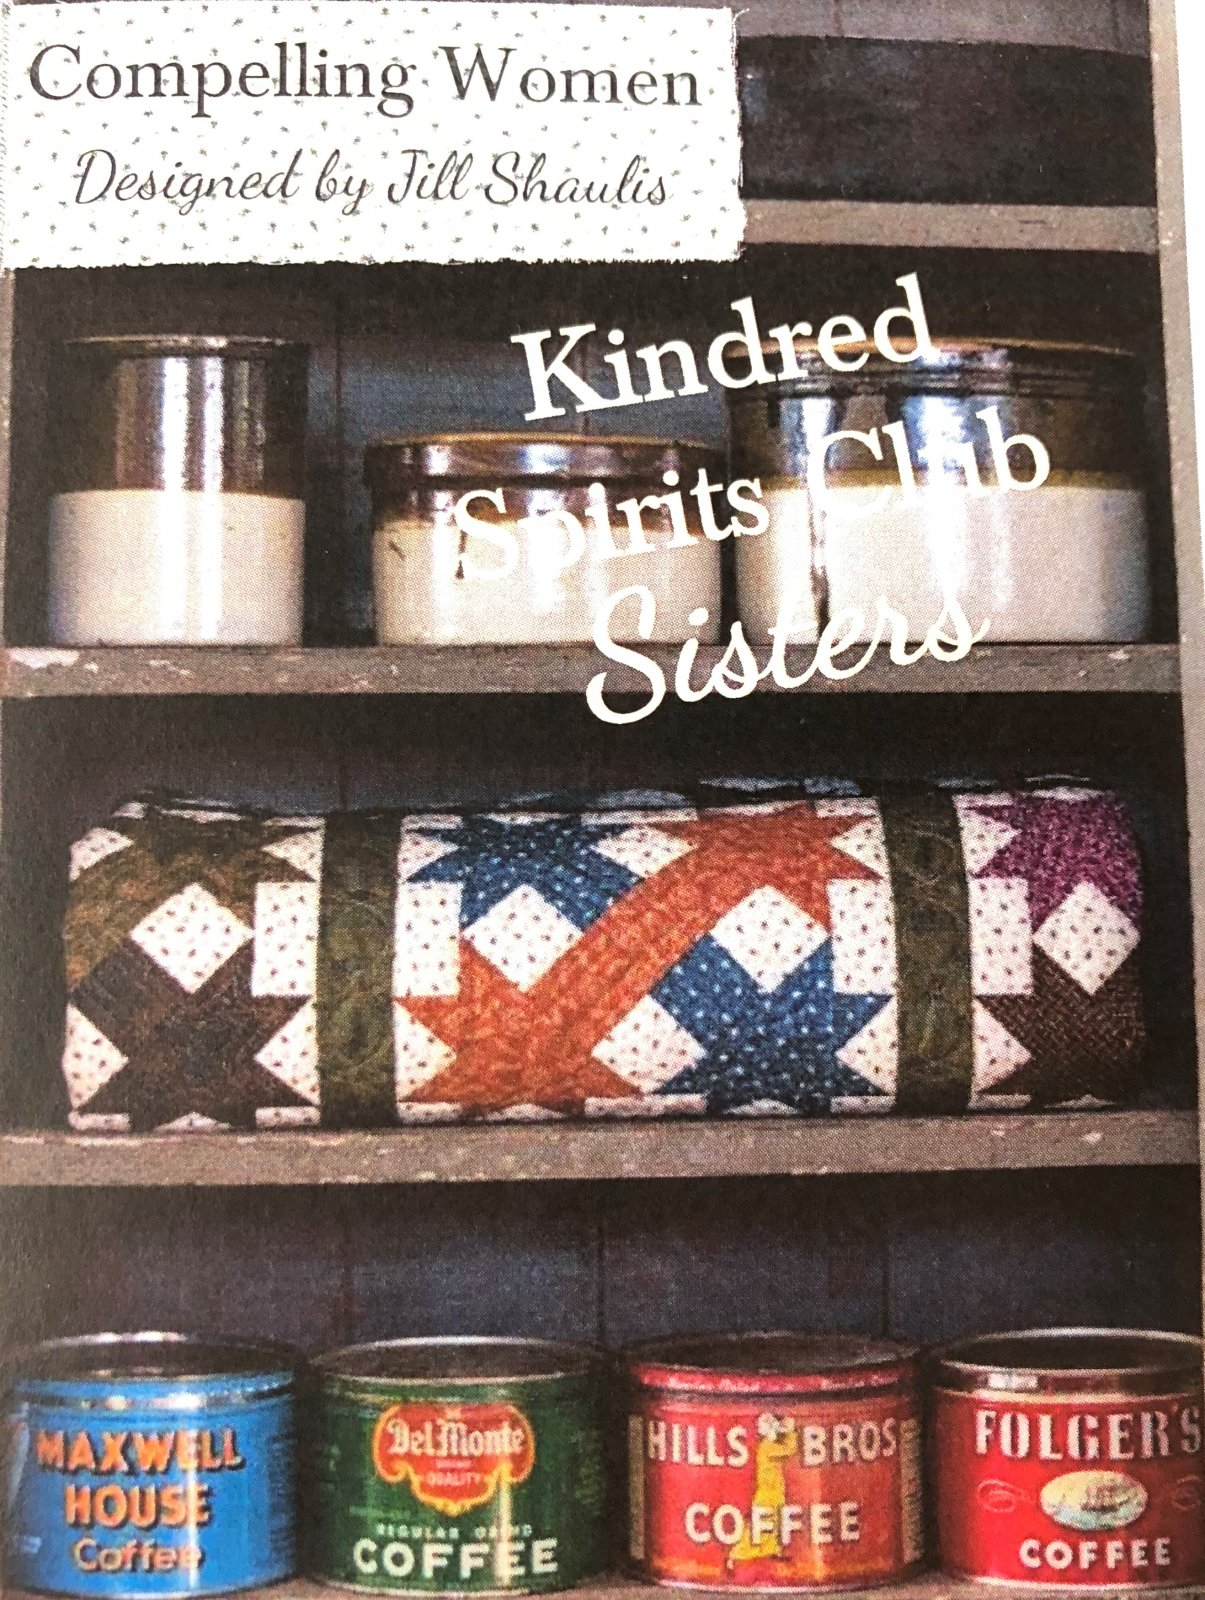 Kindred Spirits Sisters Kit Compelling Women Quilt